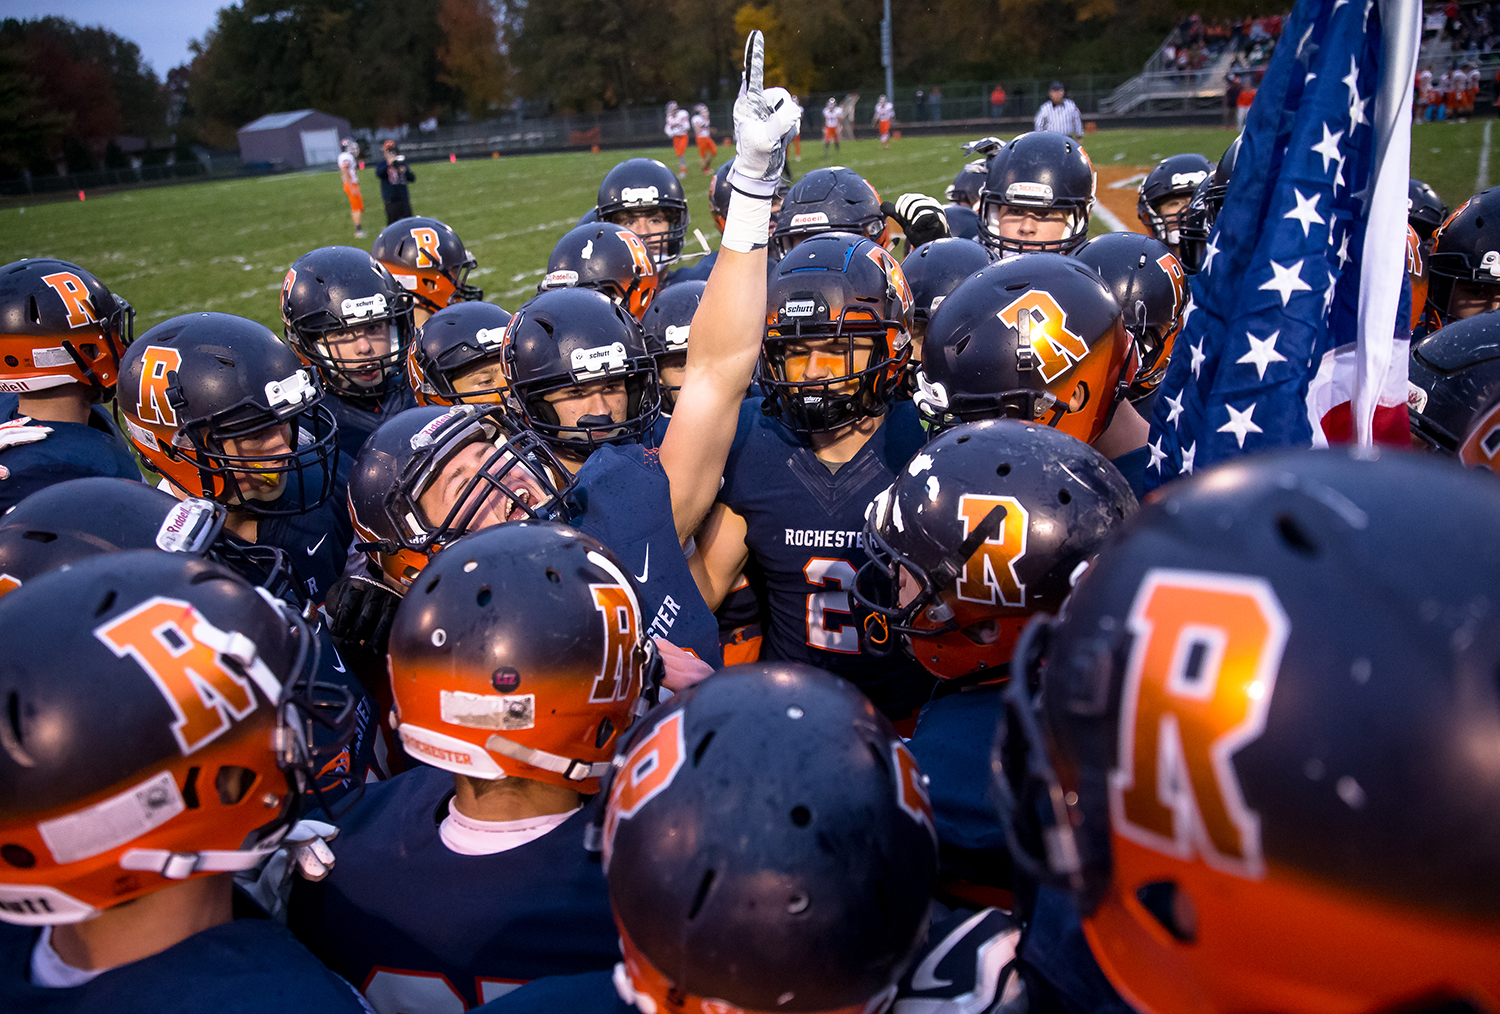 Rochester's Cade Eddington (6) gets the Rockets fired up prior to kickoff against Pontiac in the second round of the Class 4A playoffs at Rochester High School, Saturday, Nov. 3, 2018, in Rochester, Ill. [Justin L. Fowler/The State Journal-Register]